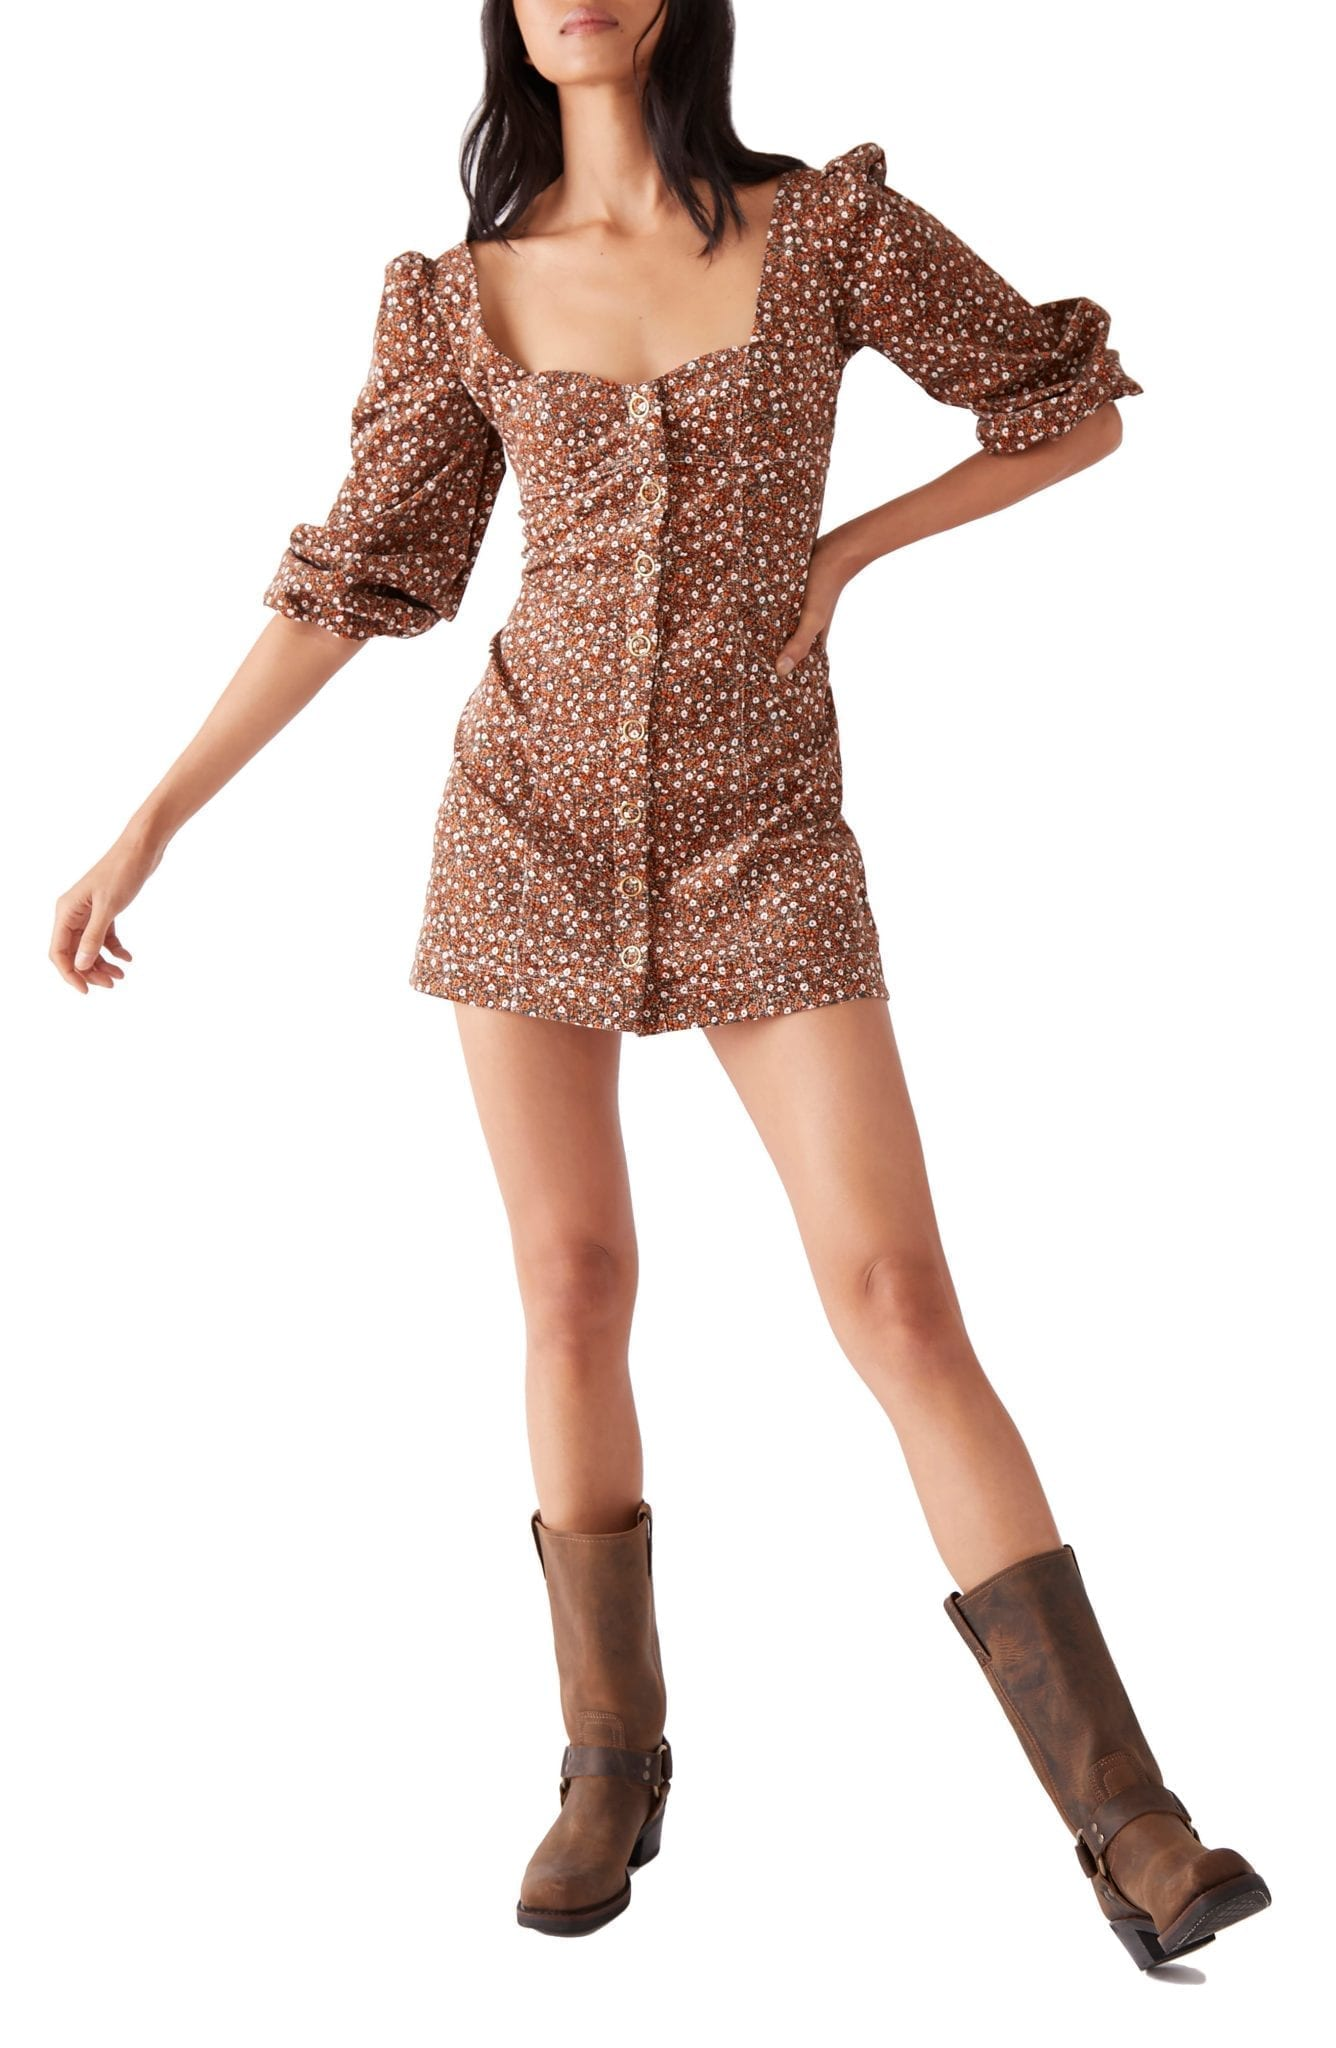 FREE PEOPLE Call Me Cord Puff Shoulder Mini Dress